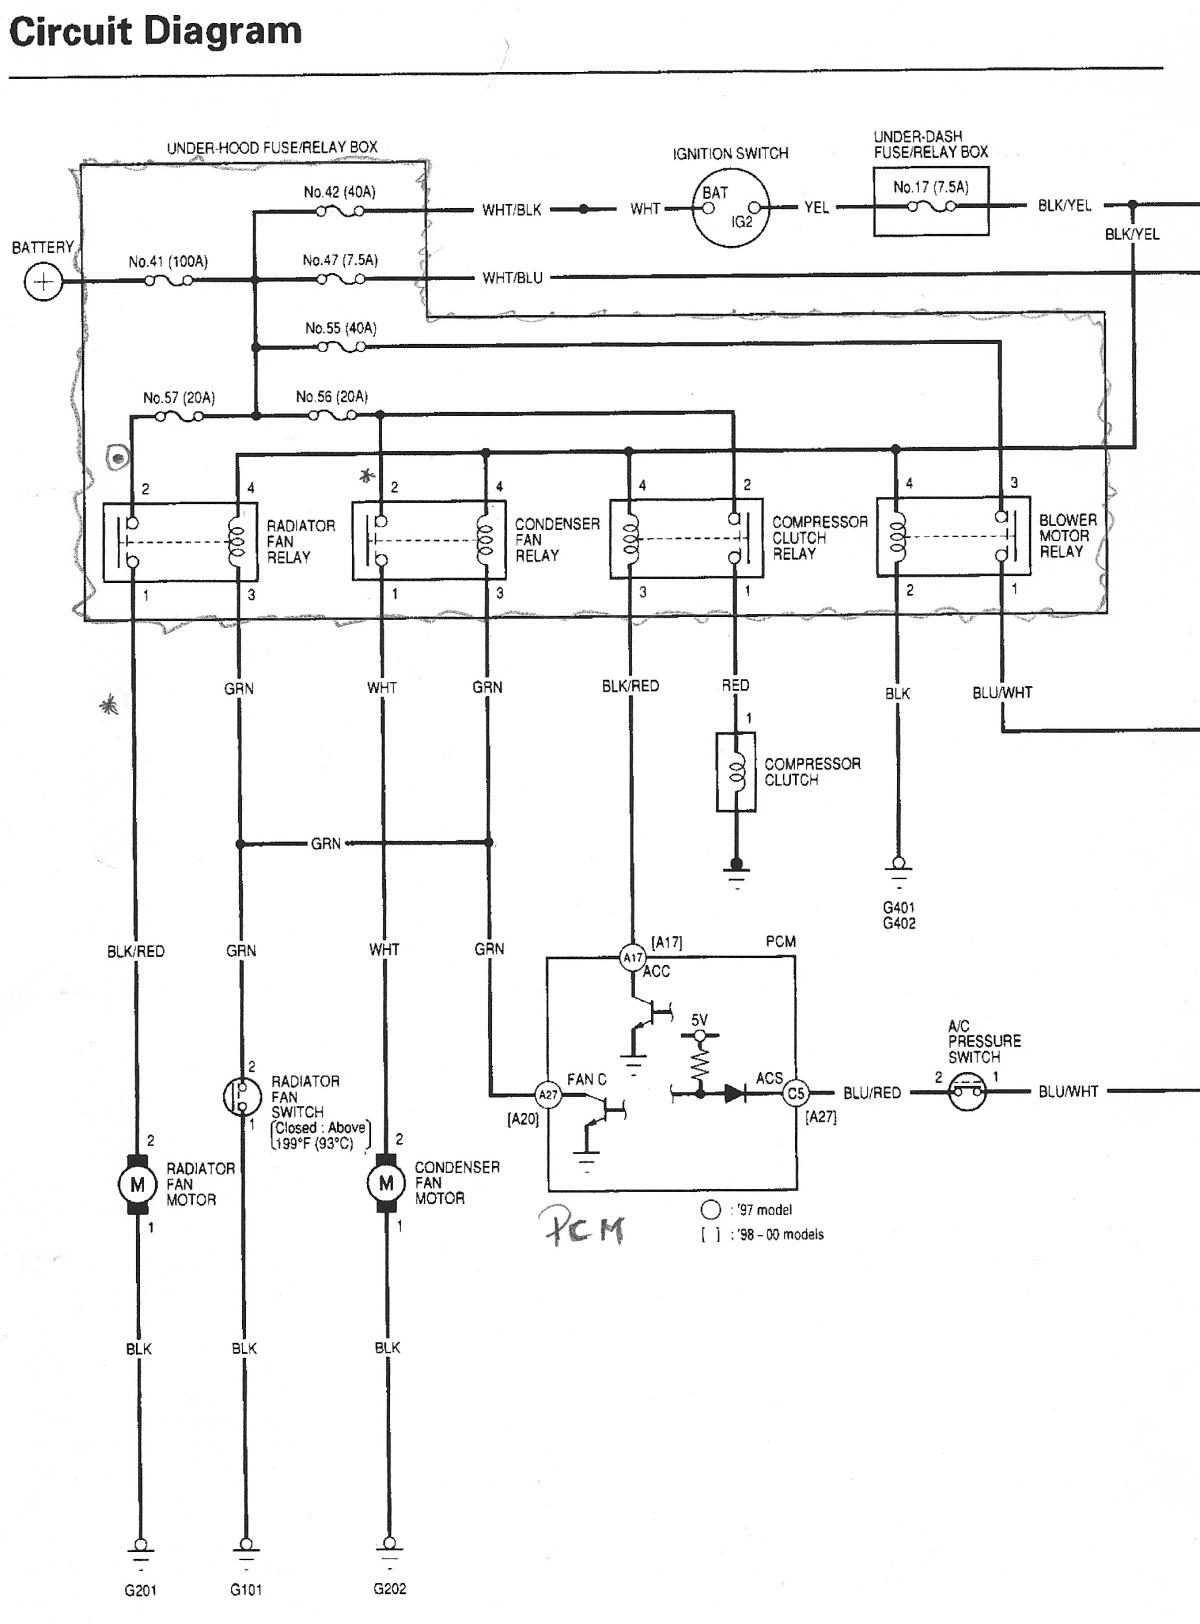 2005 Isuzu Npr Starter Wiring Diagram On Saab 900 Wiring Diagram